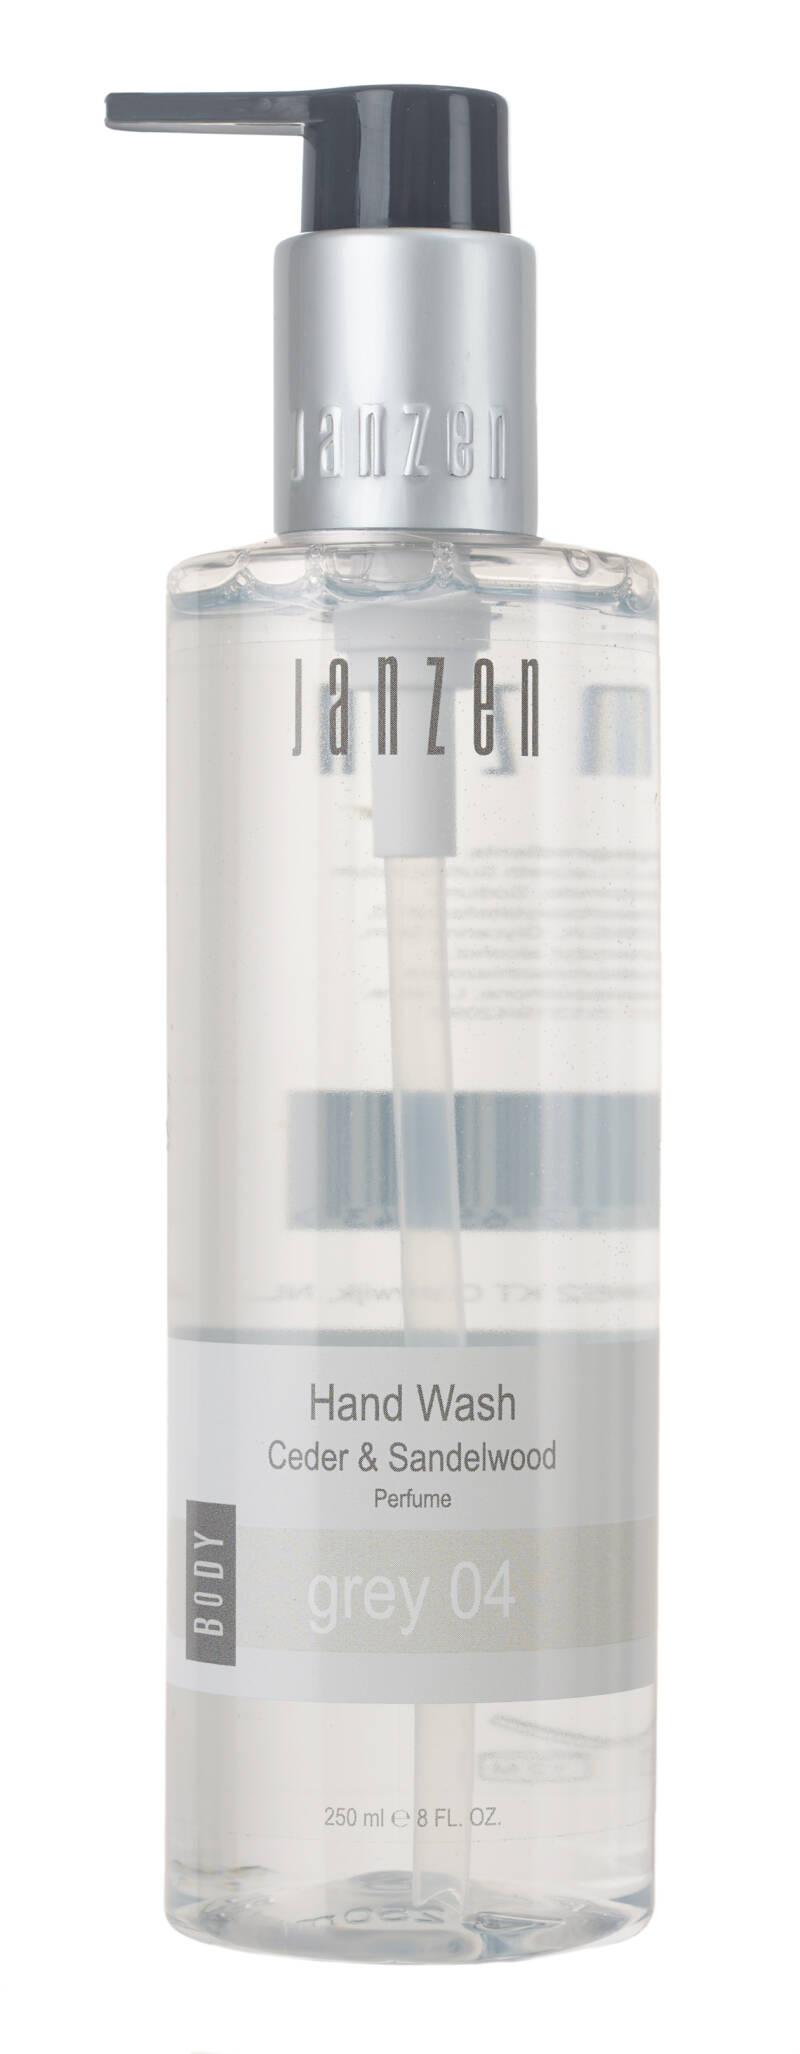 Hand Wash Grey Janzen